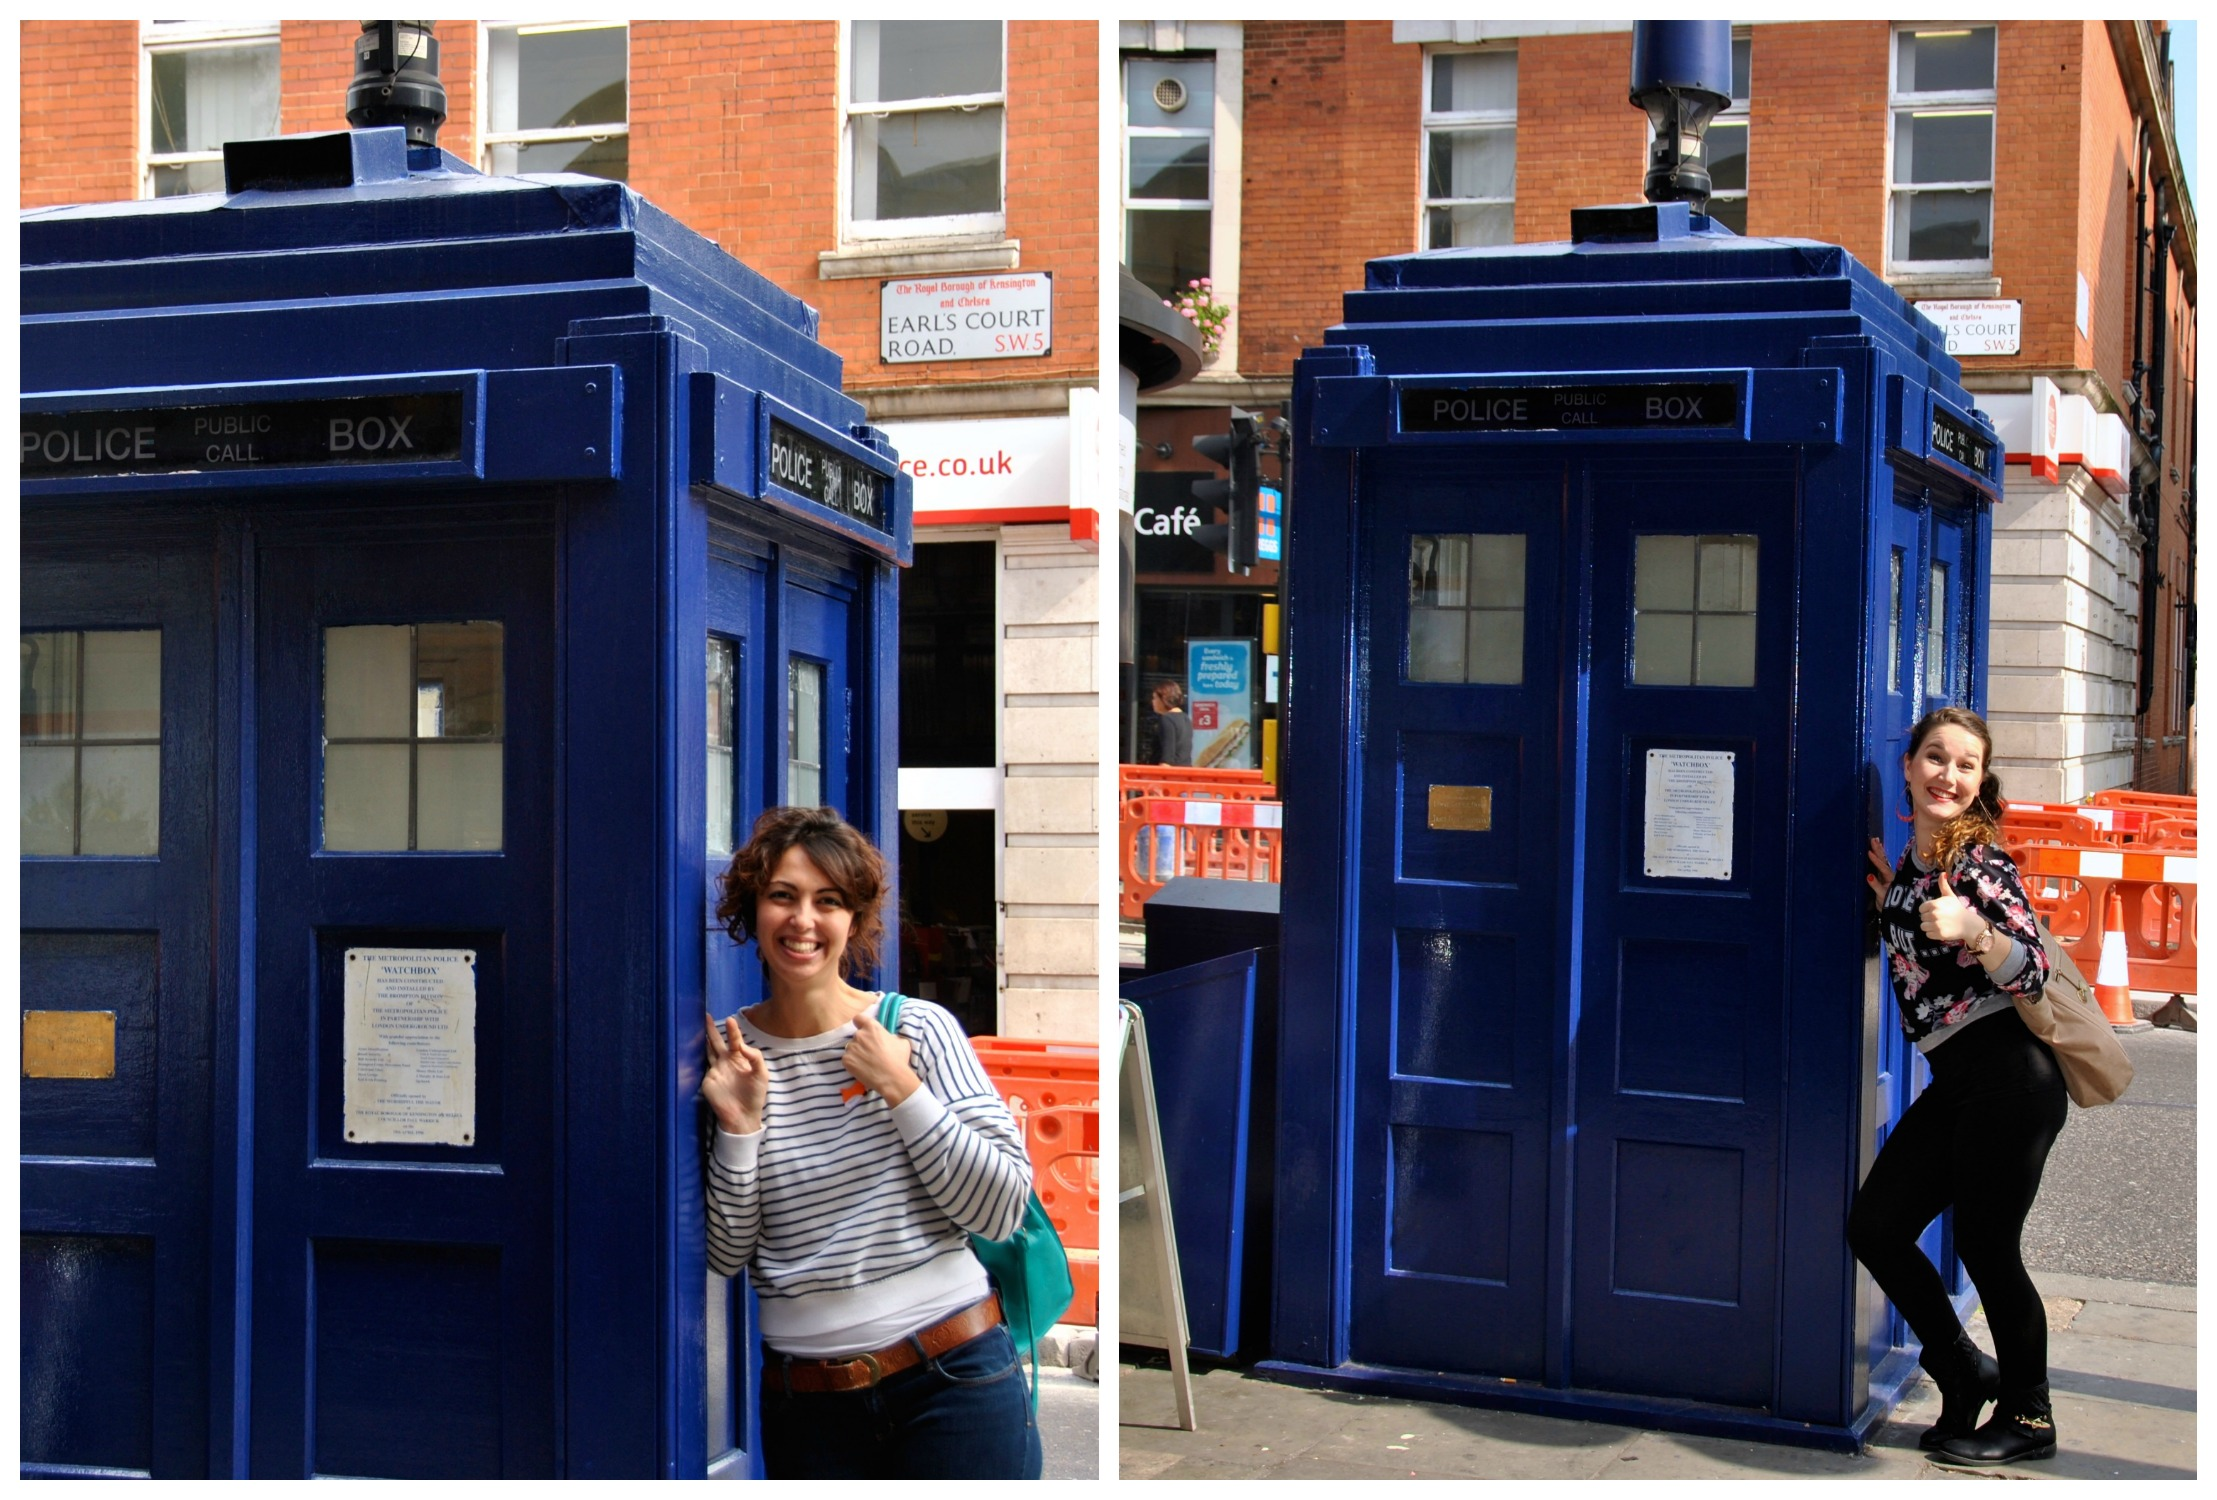 Tardis in London